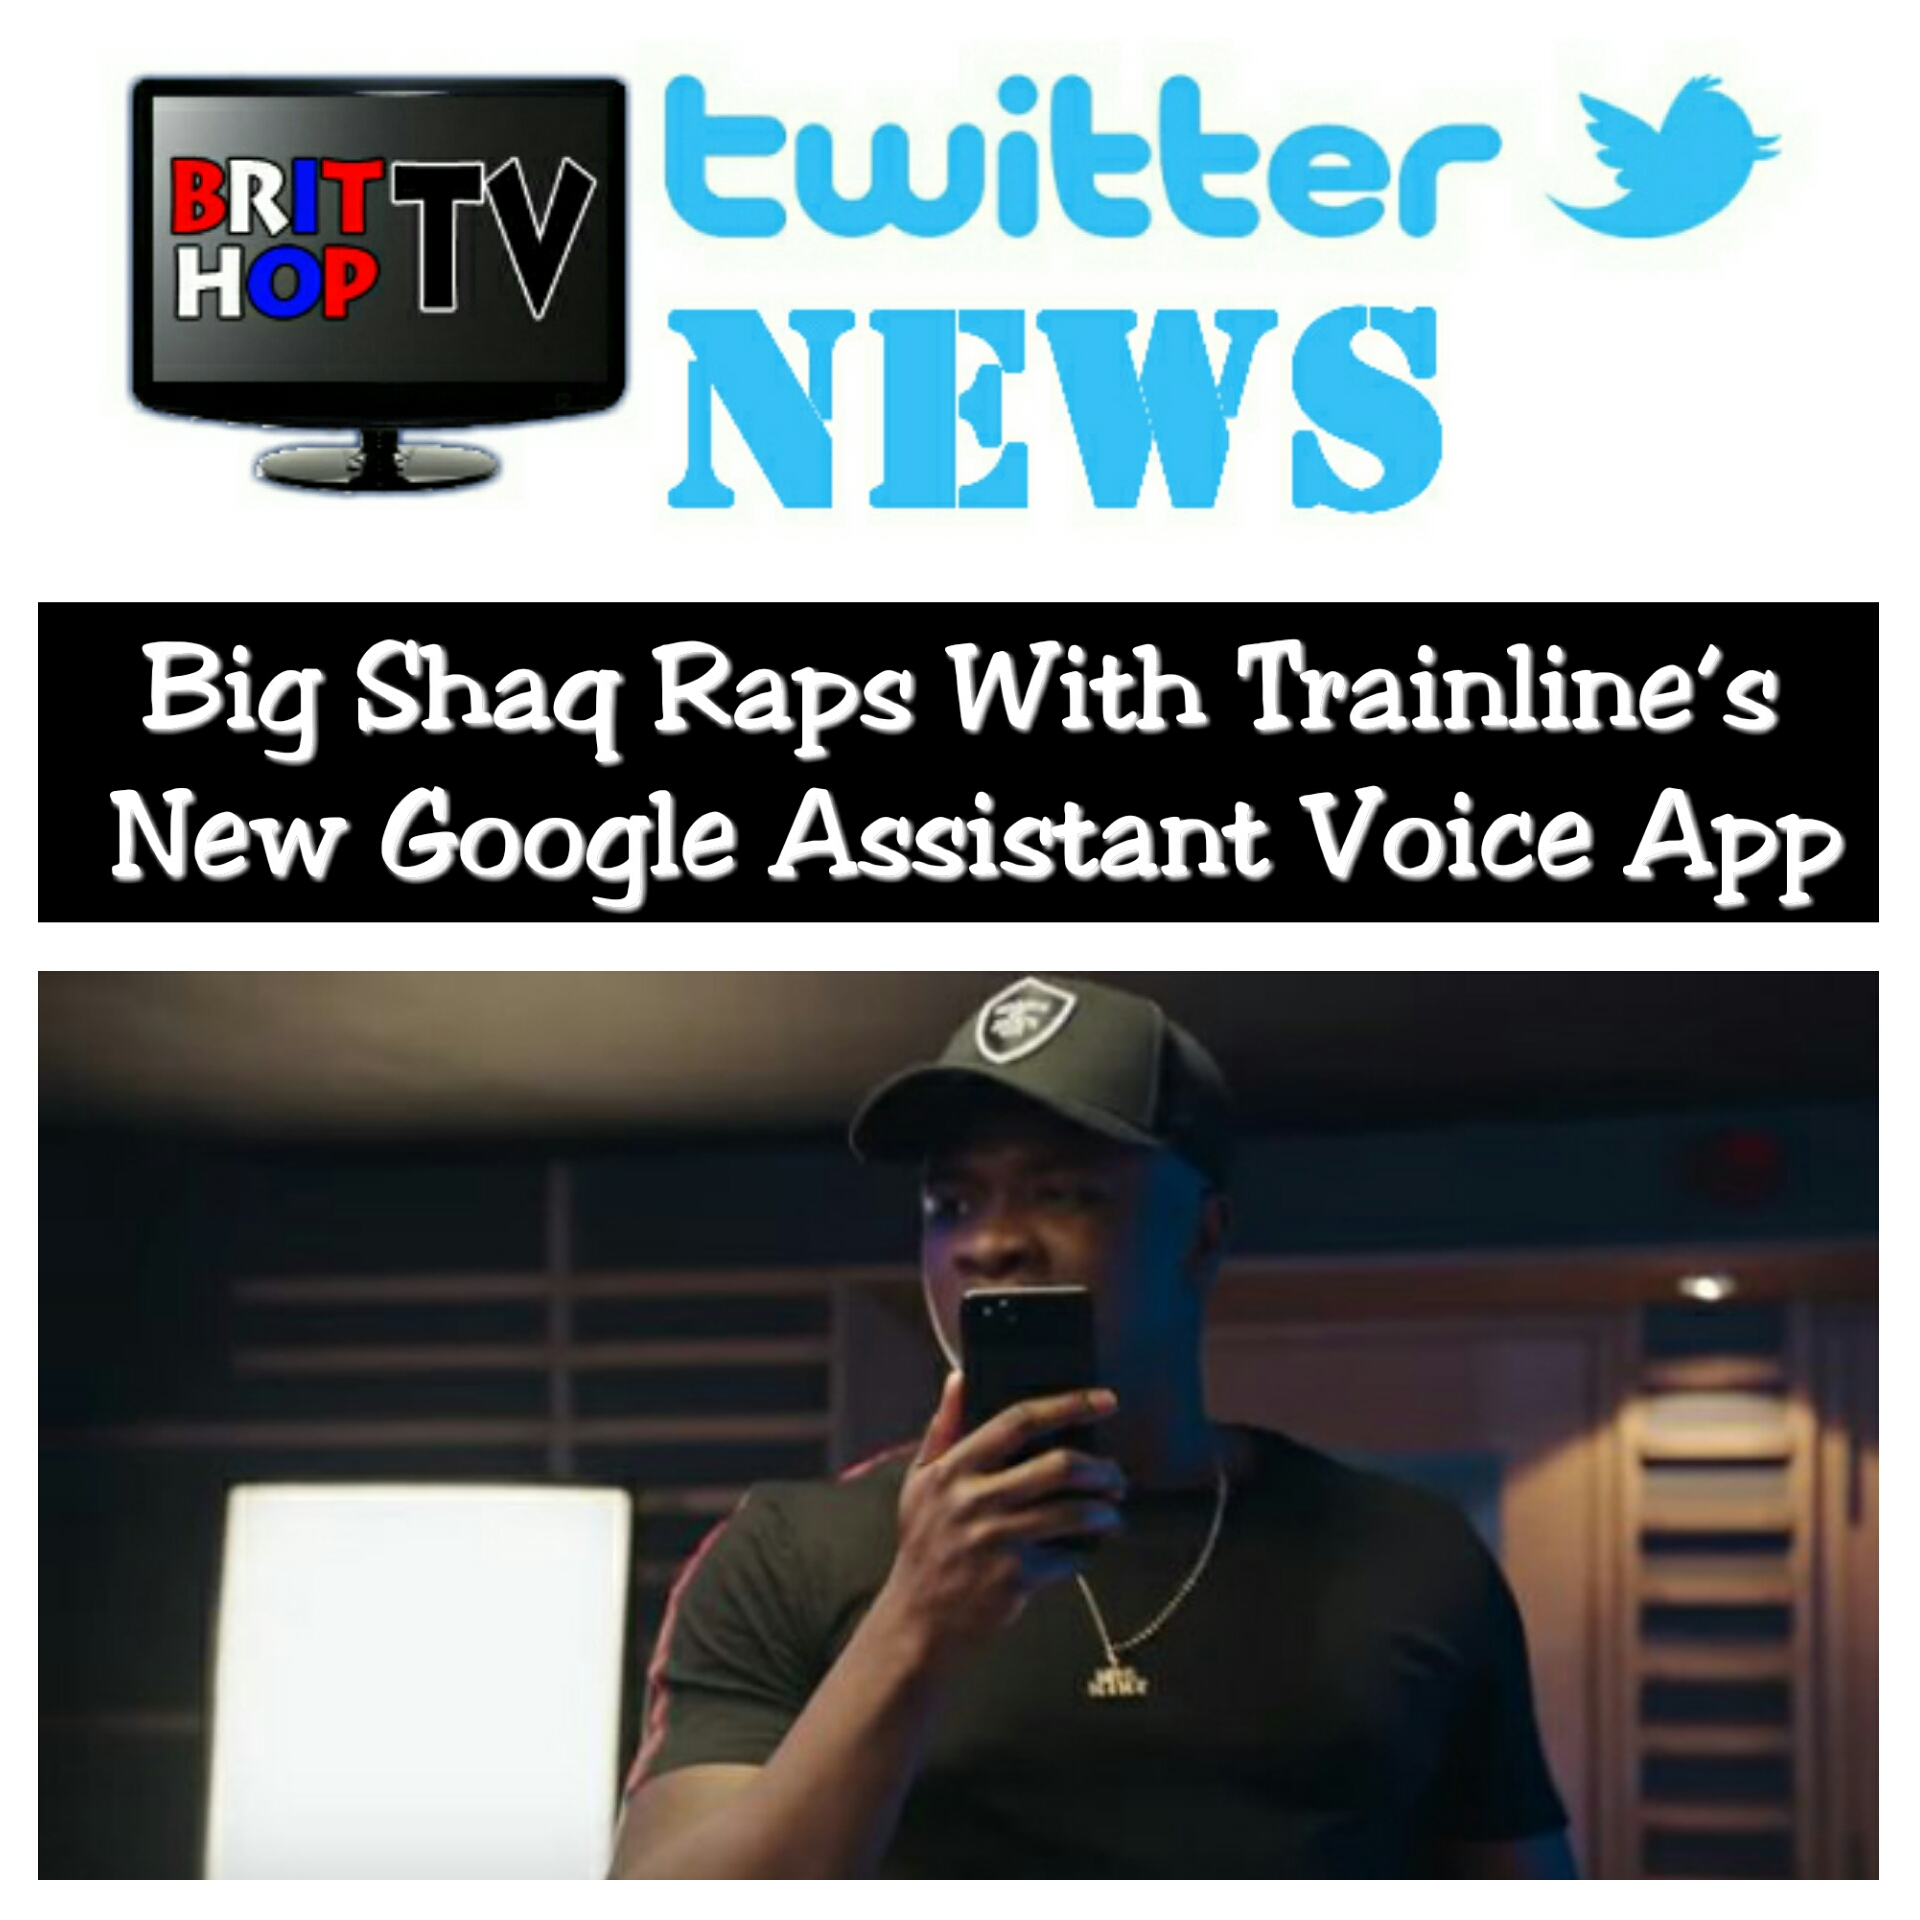 BRITHOPTV: [News] Big Shaq Raps With Trainline's New Google Assistant Voice App | #UkRap #MobileApp #Technology